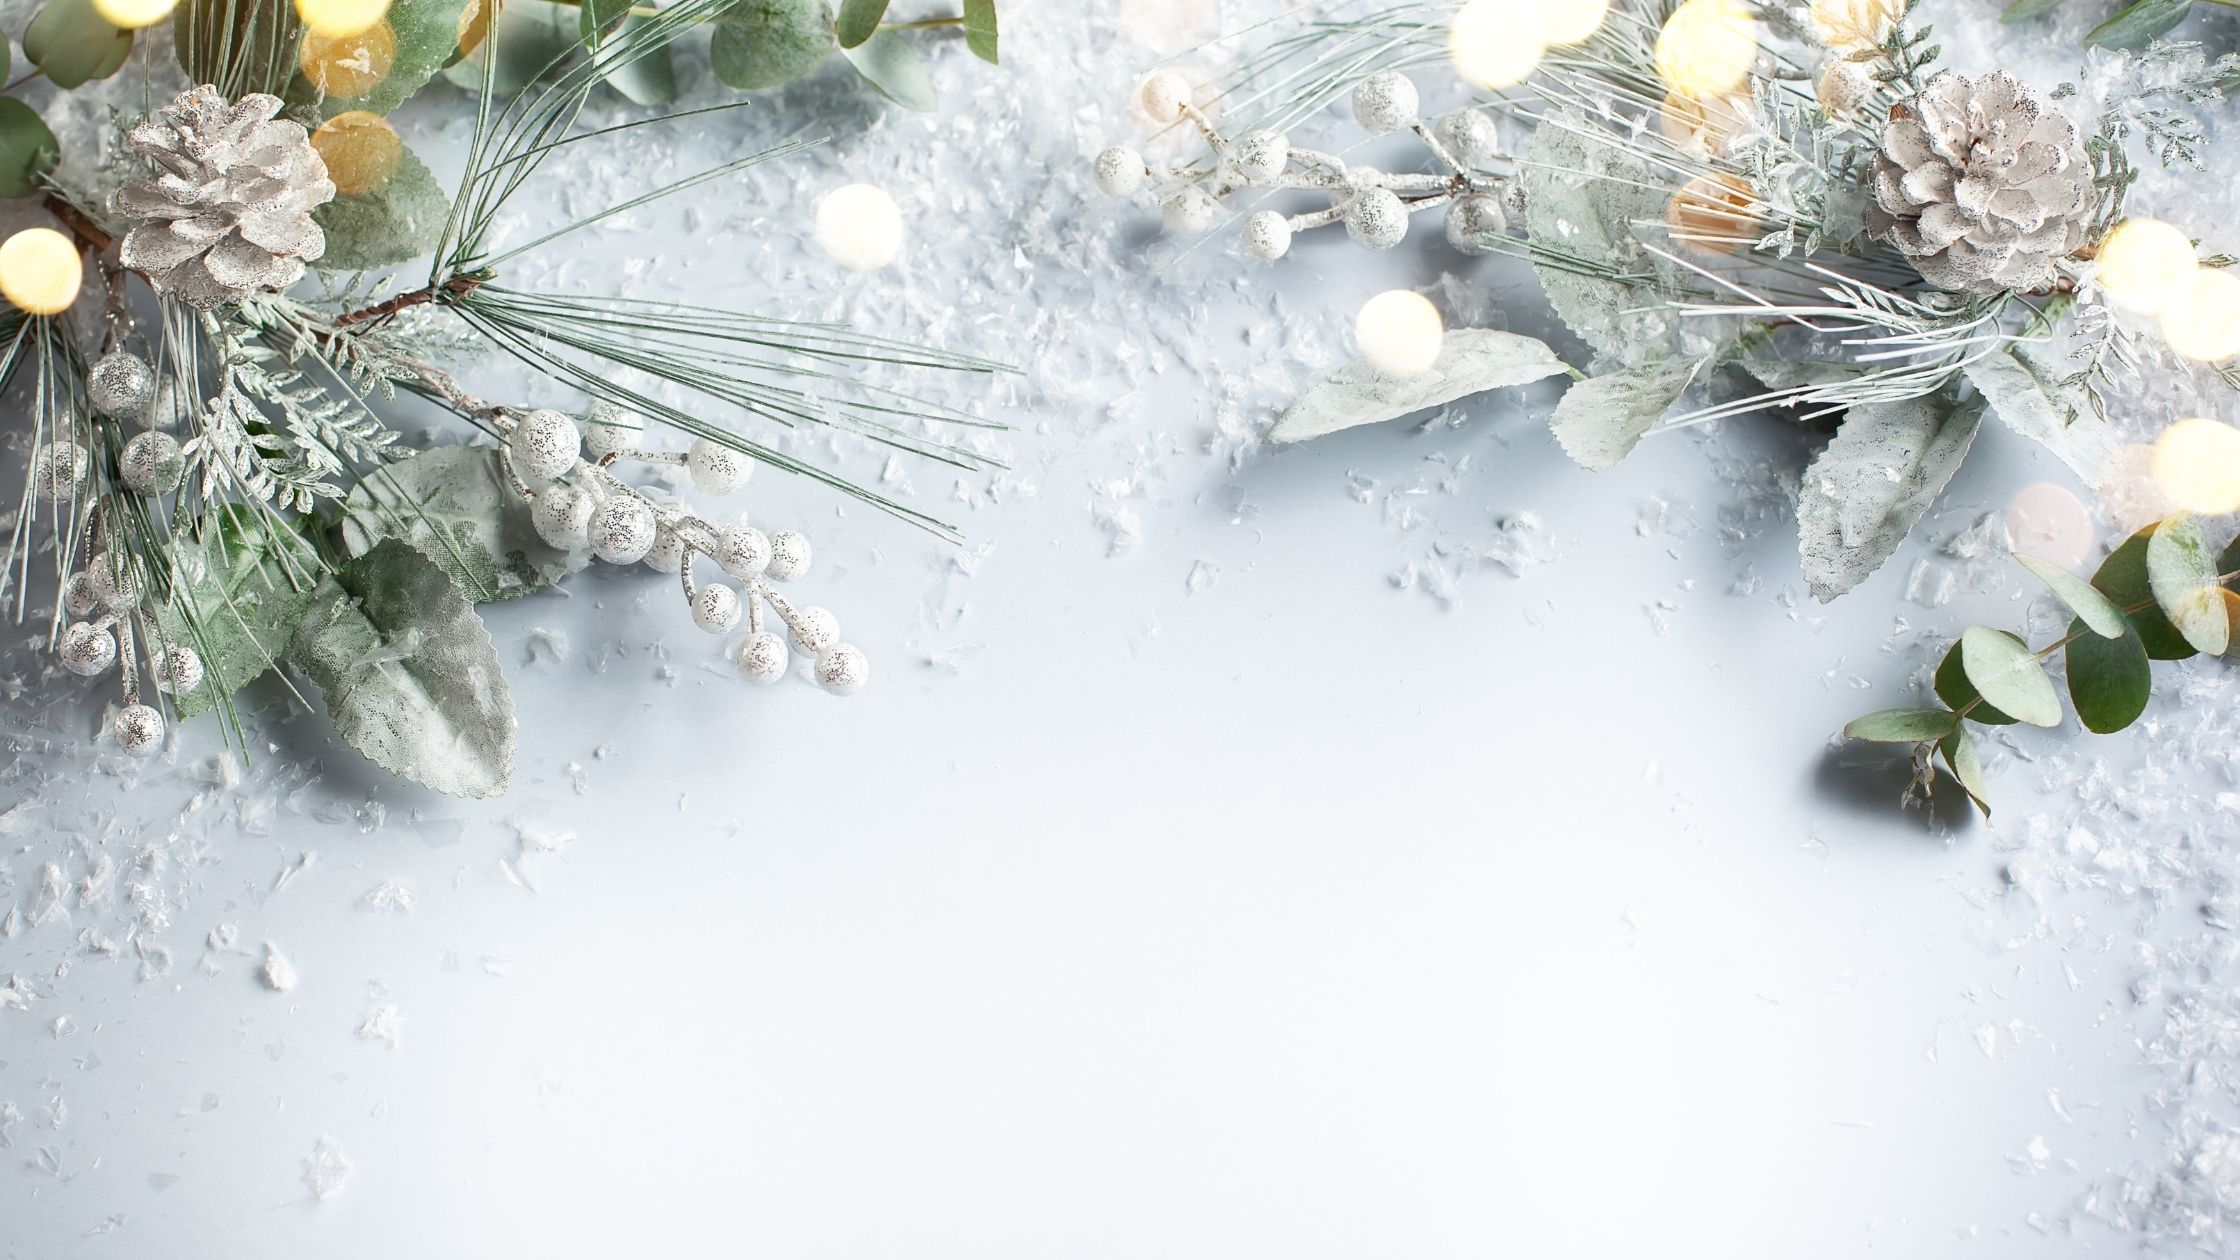 6 Ways to Reduce Waste Over the Holidays